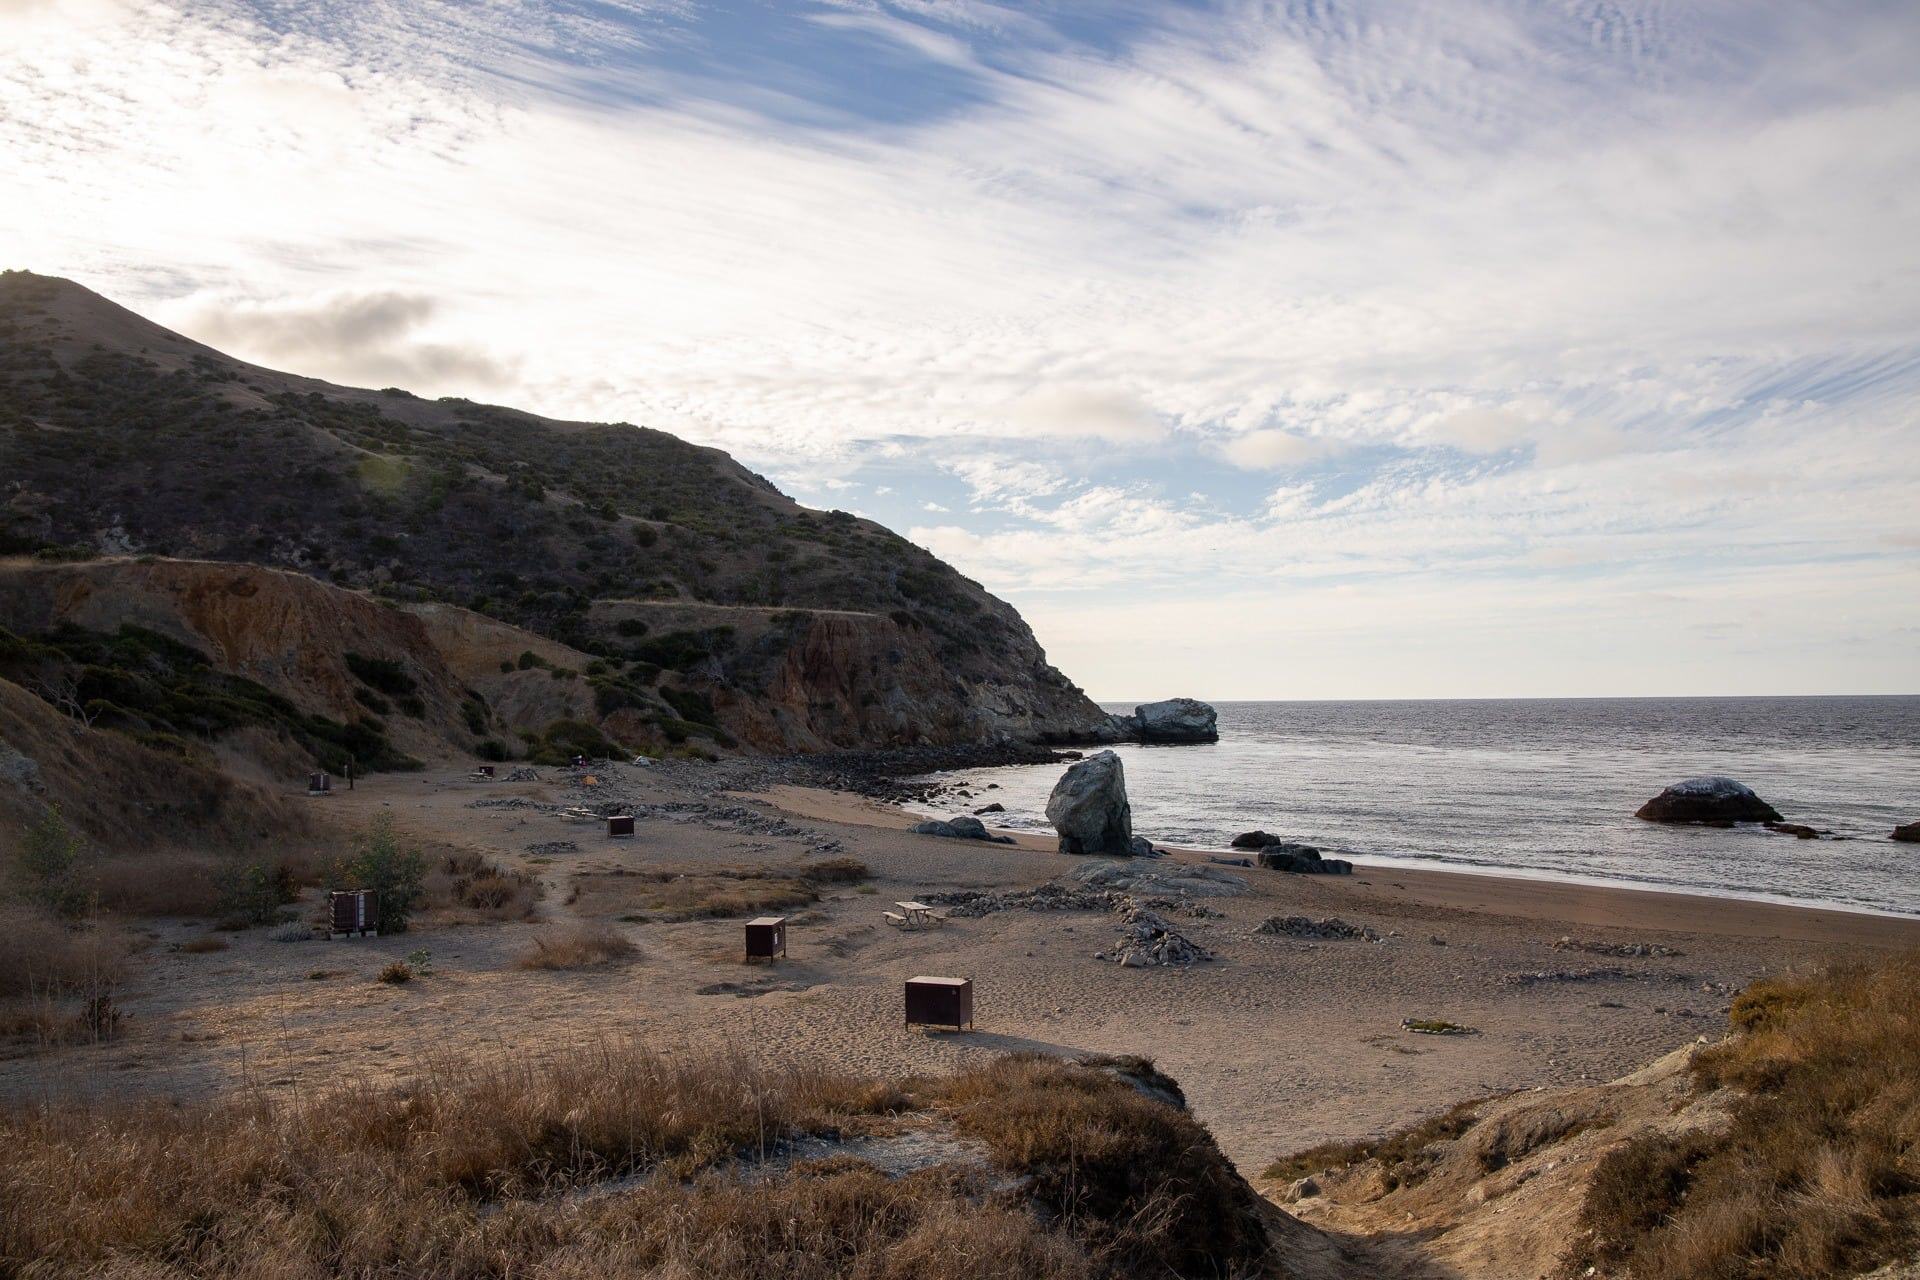 Parson's Landing / Plan a backpacking trip on the Trans-Catalina Trail on Catalina Island with this trail guide with tips on the best campsites, water availability, gear & more